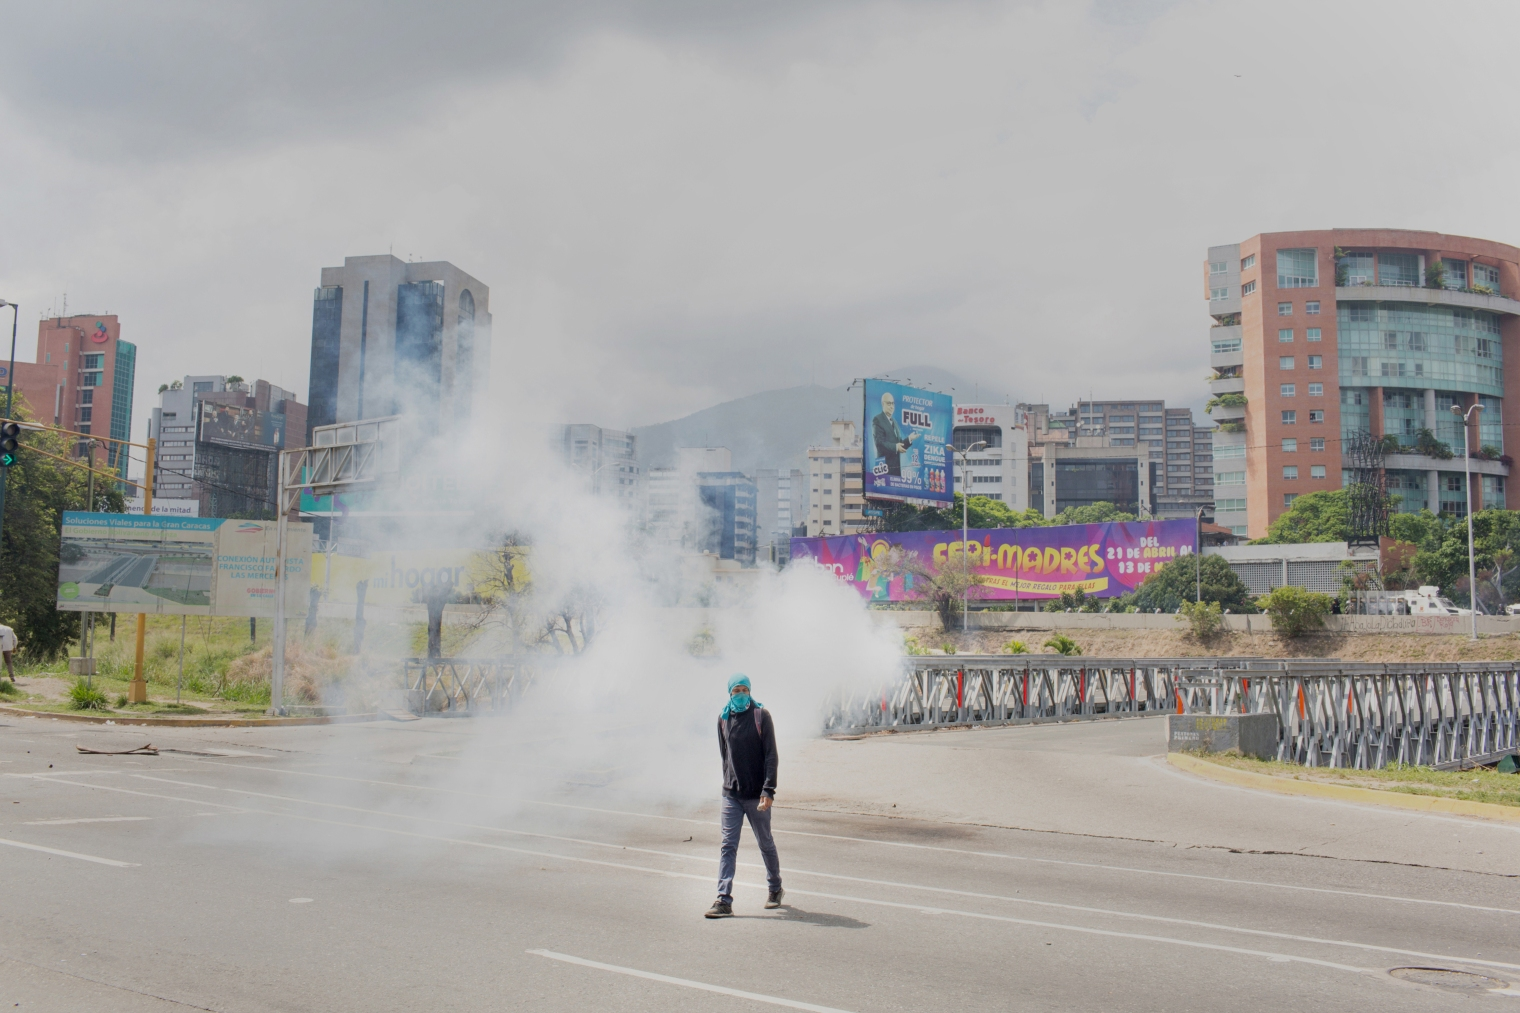 A masked protester walks during a clash with authorities after a silent march honoring the martyrs in Caracas on April 22, 2017.